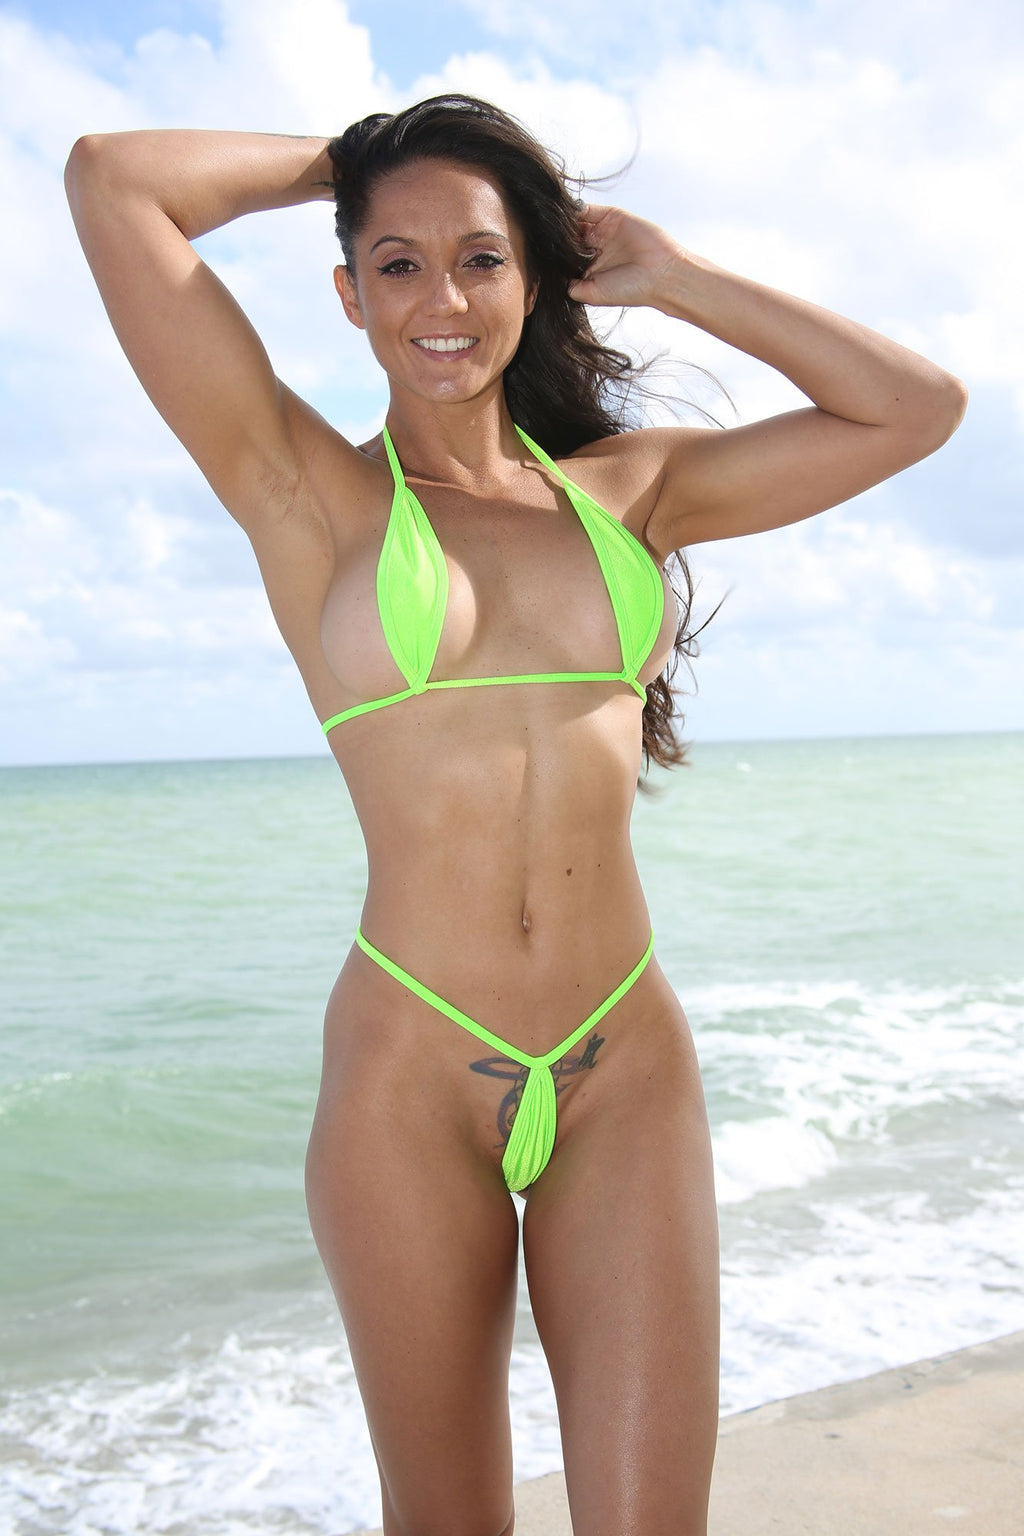 Dare To Be Bare Solid Neon Green Extreme Teardrop G-String Bikini